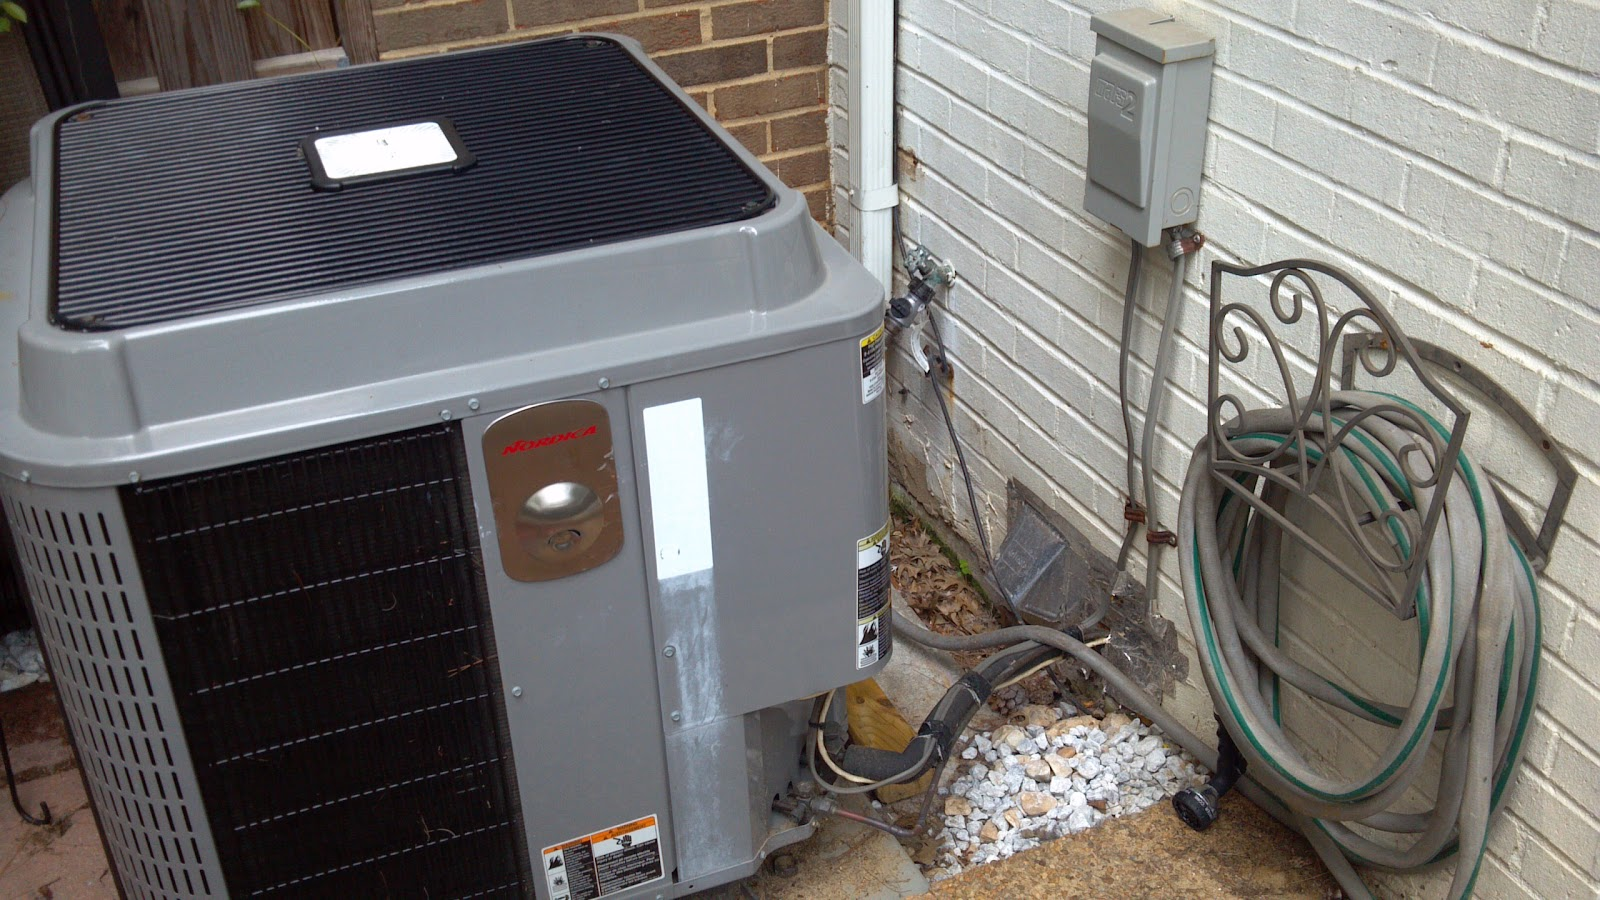 Heat-pump-dryer-exhaust.jpg